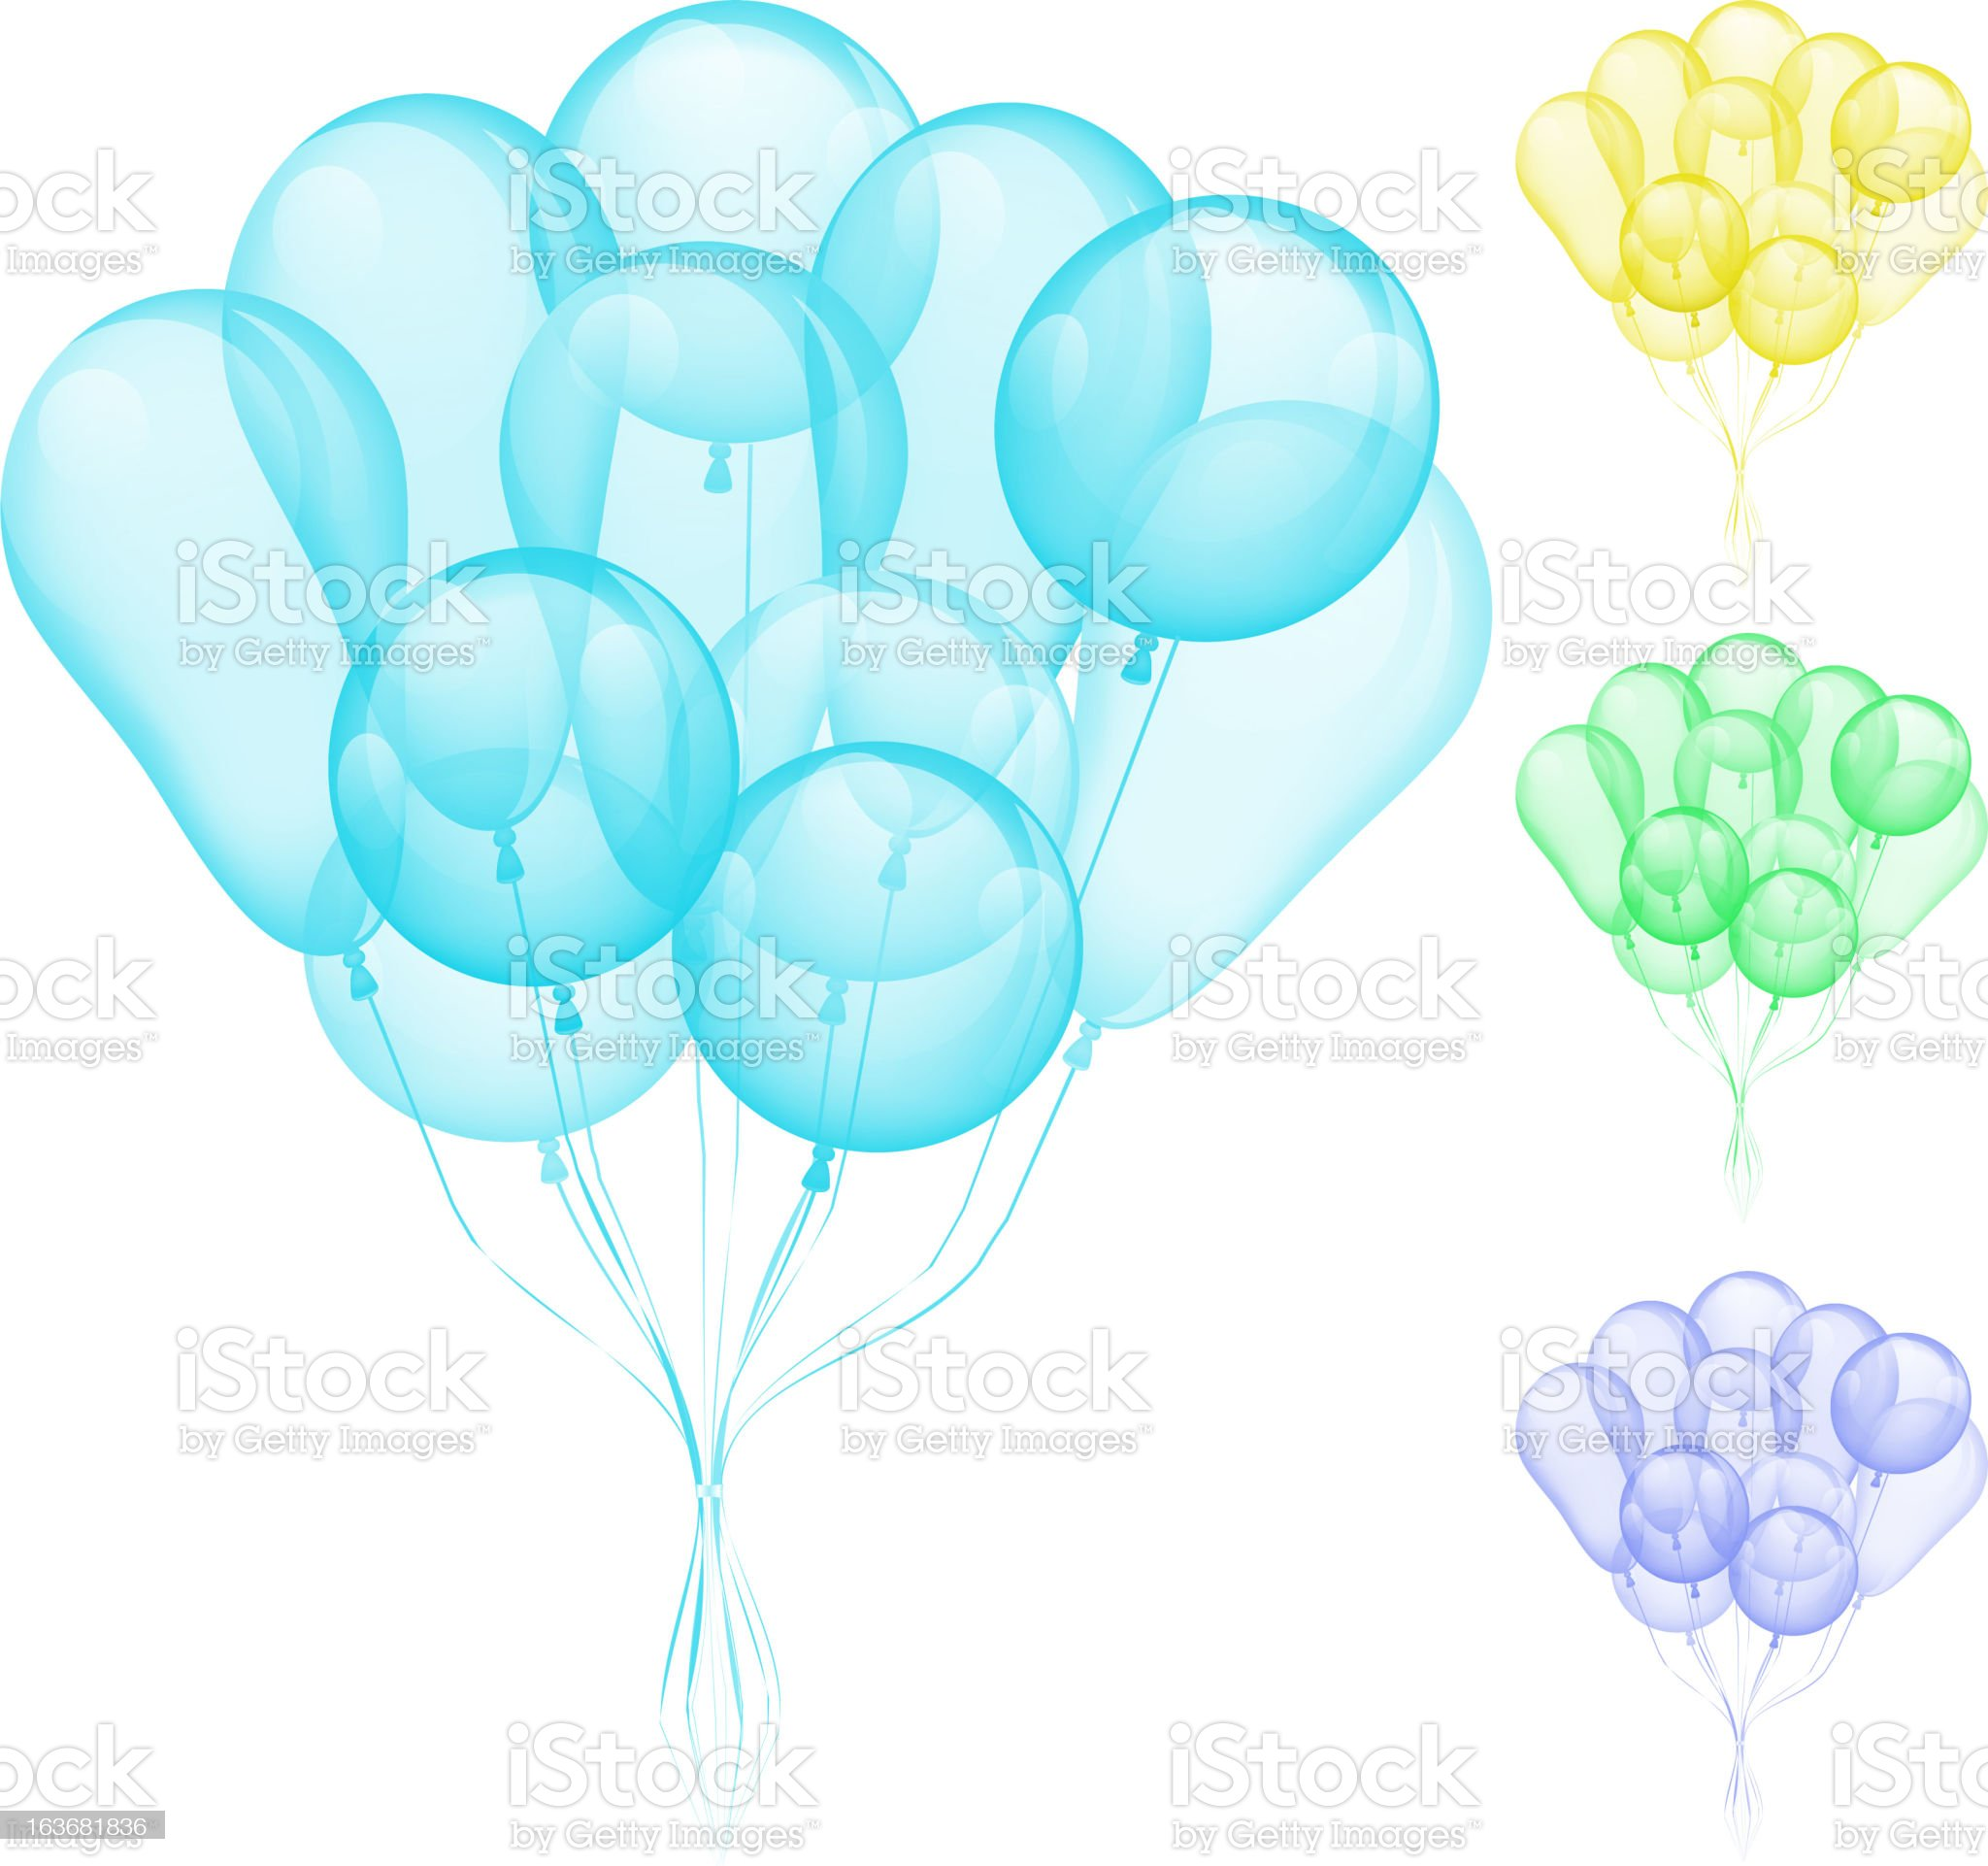 Balloons different colors royalty-free stock vector art